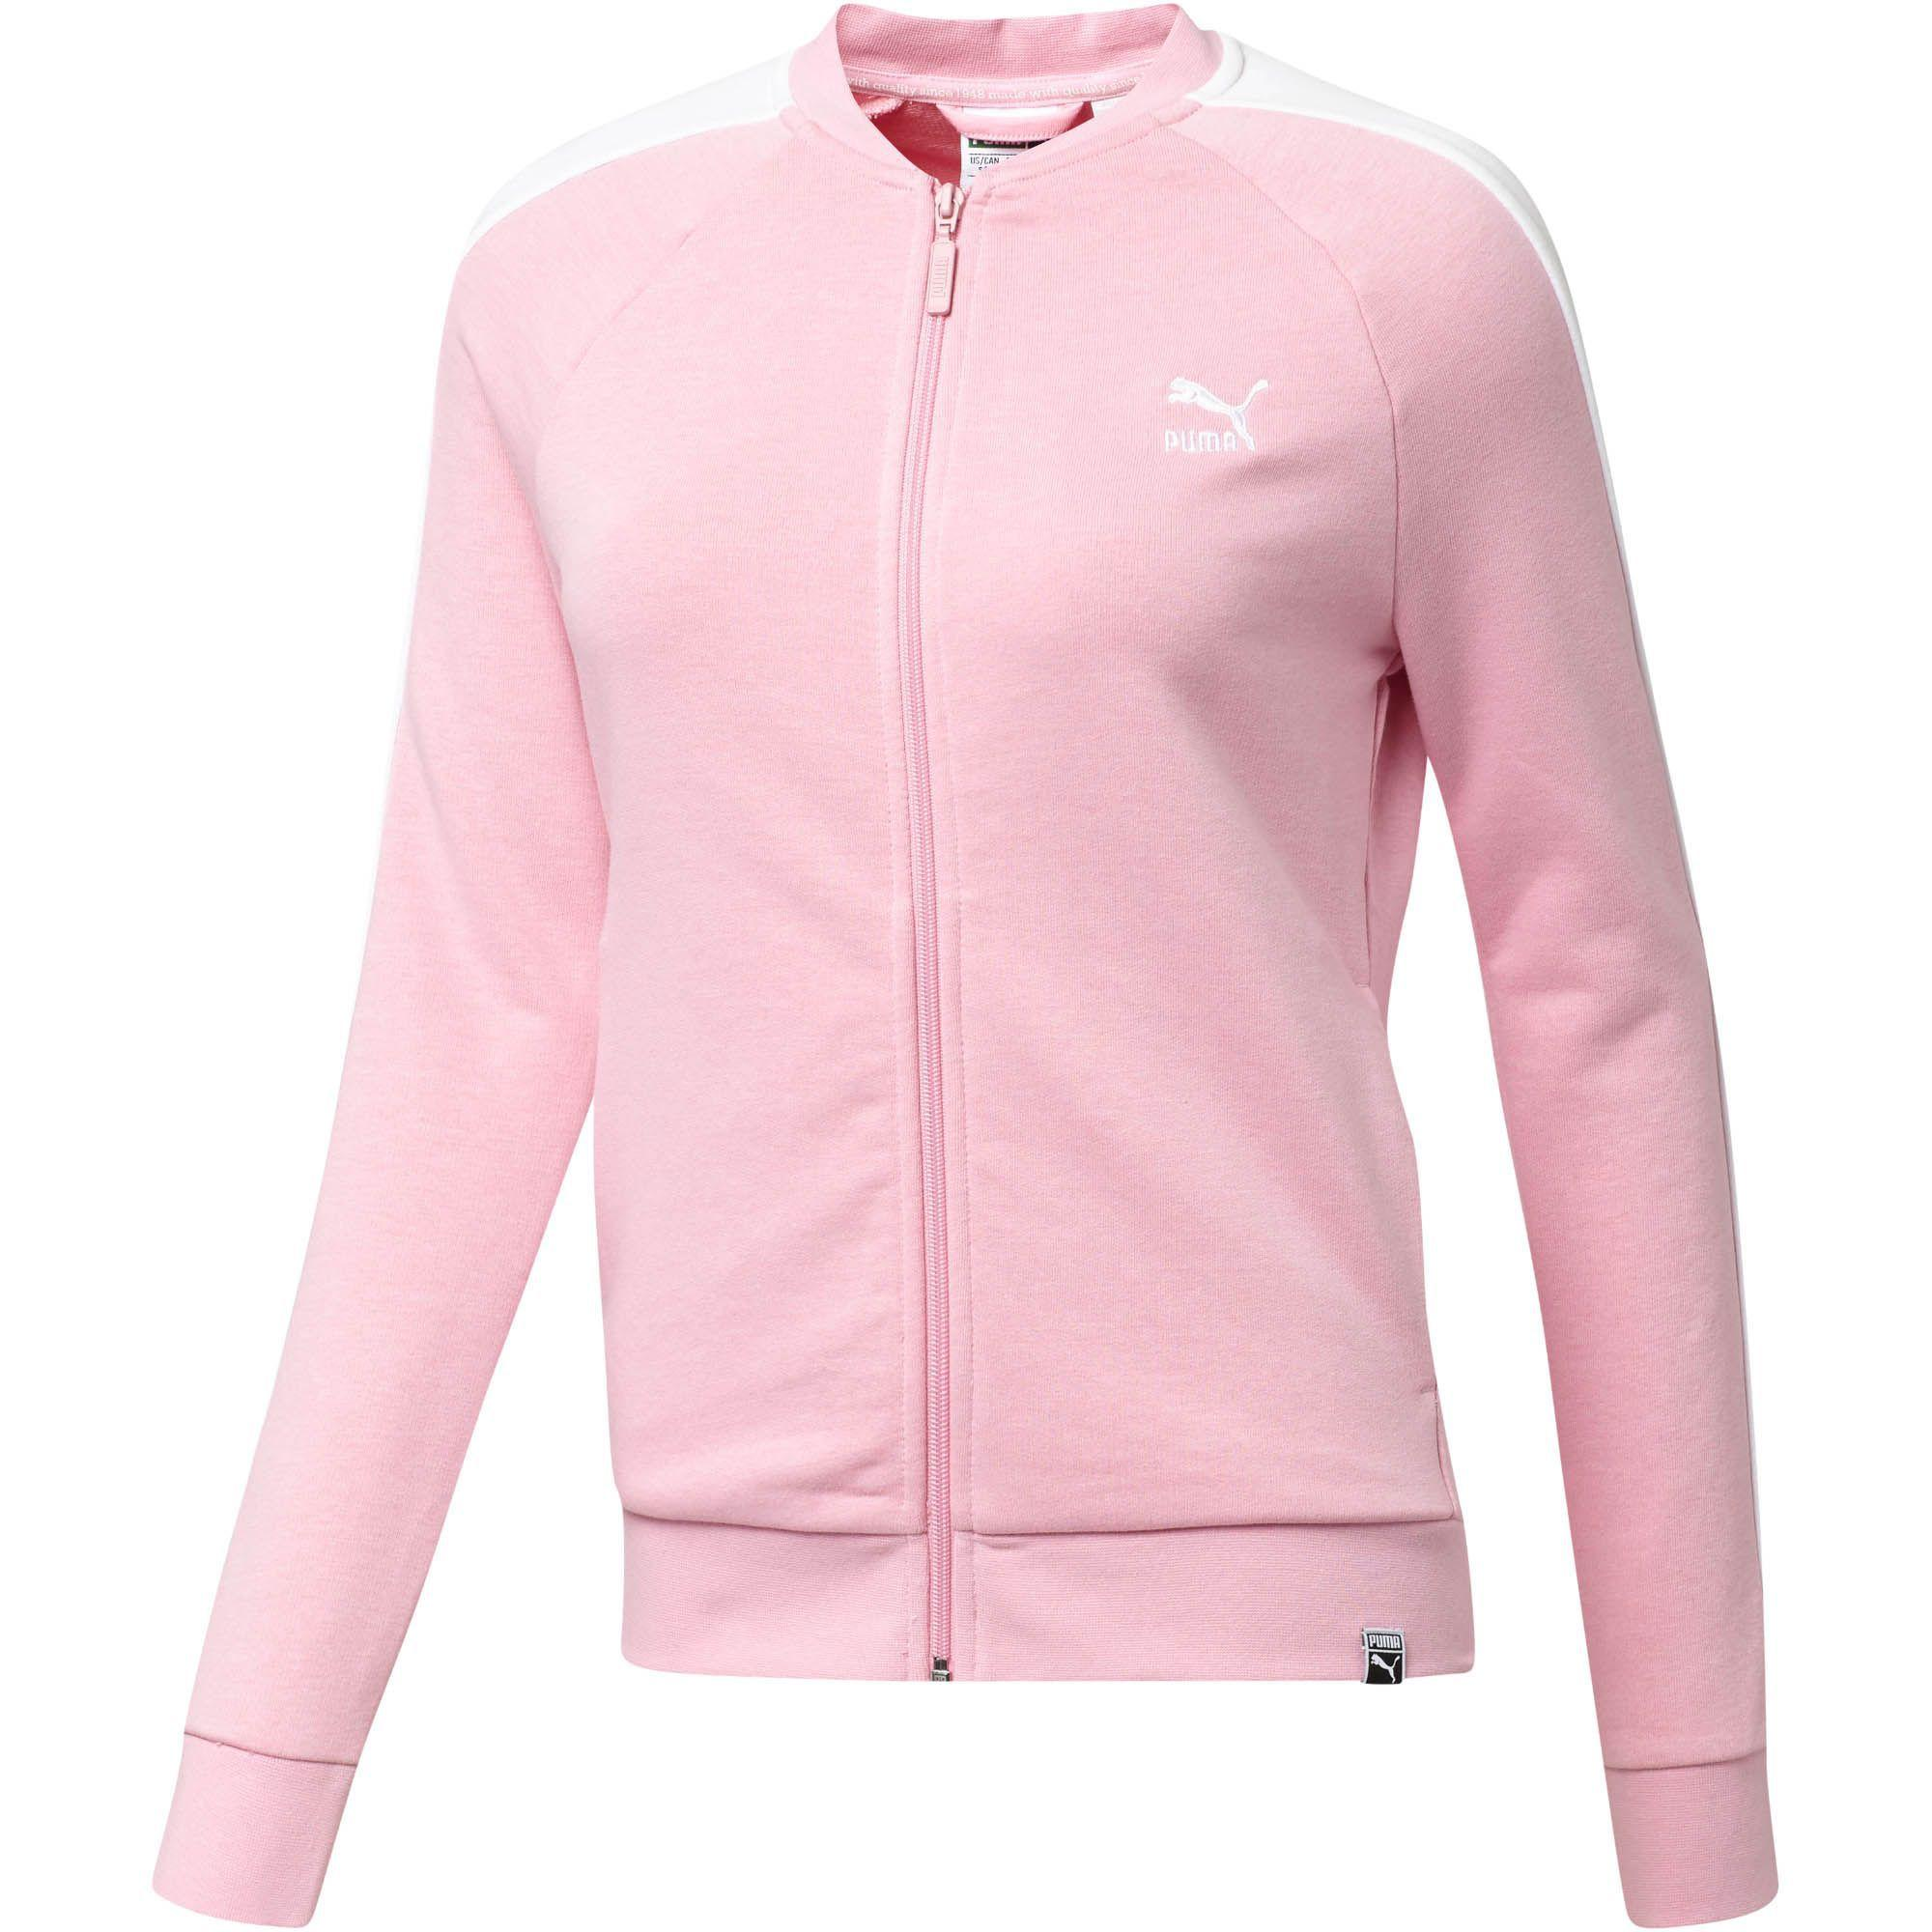 b0f1c41d86e7 Lyst - PUMA Archive Logo T7 Track Jacket in Pink